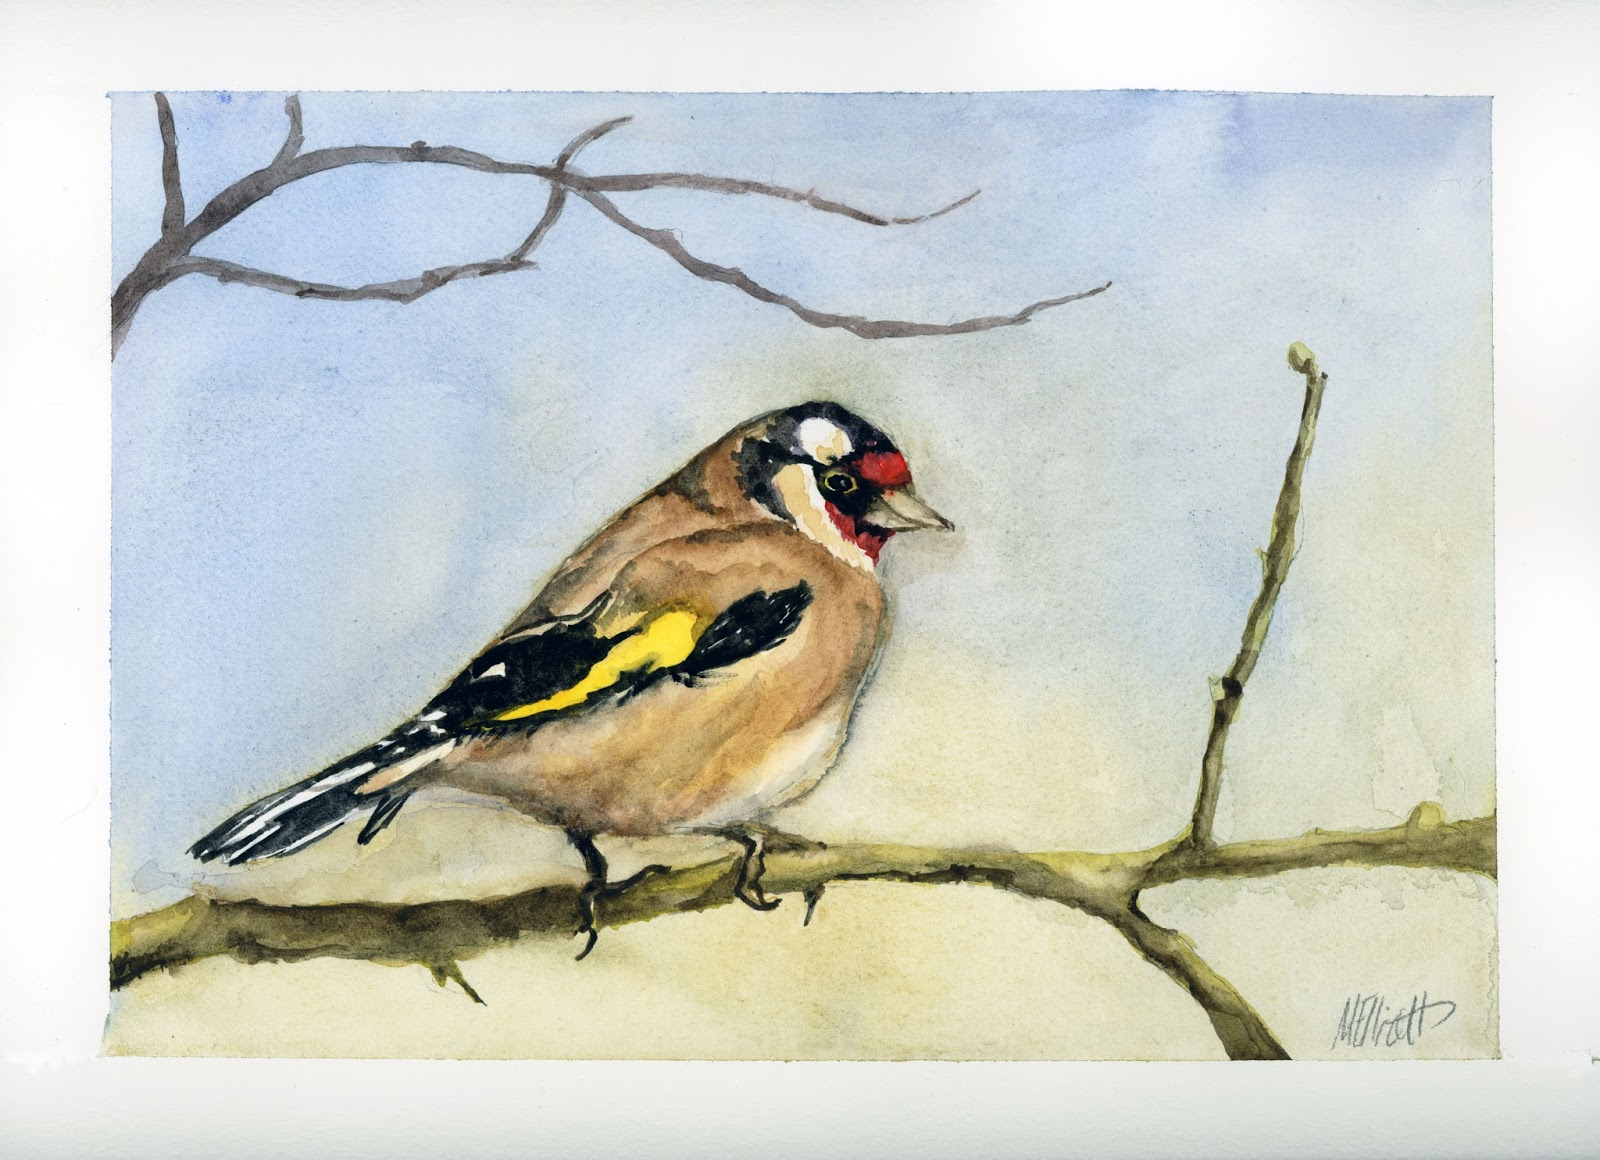 Burbank library blog may 2017 carduelis carduelis goldfinch fandeluxe Image collections